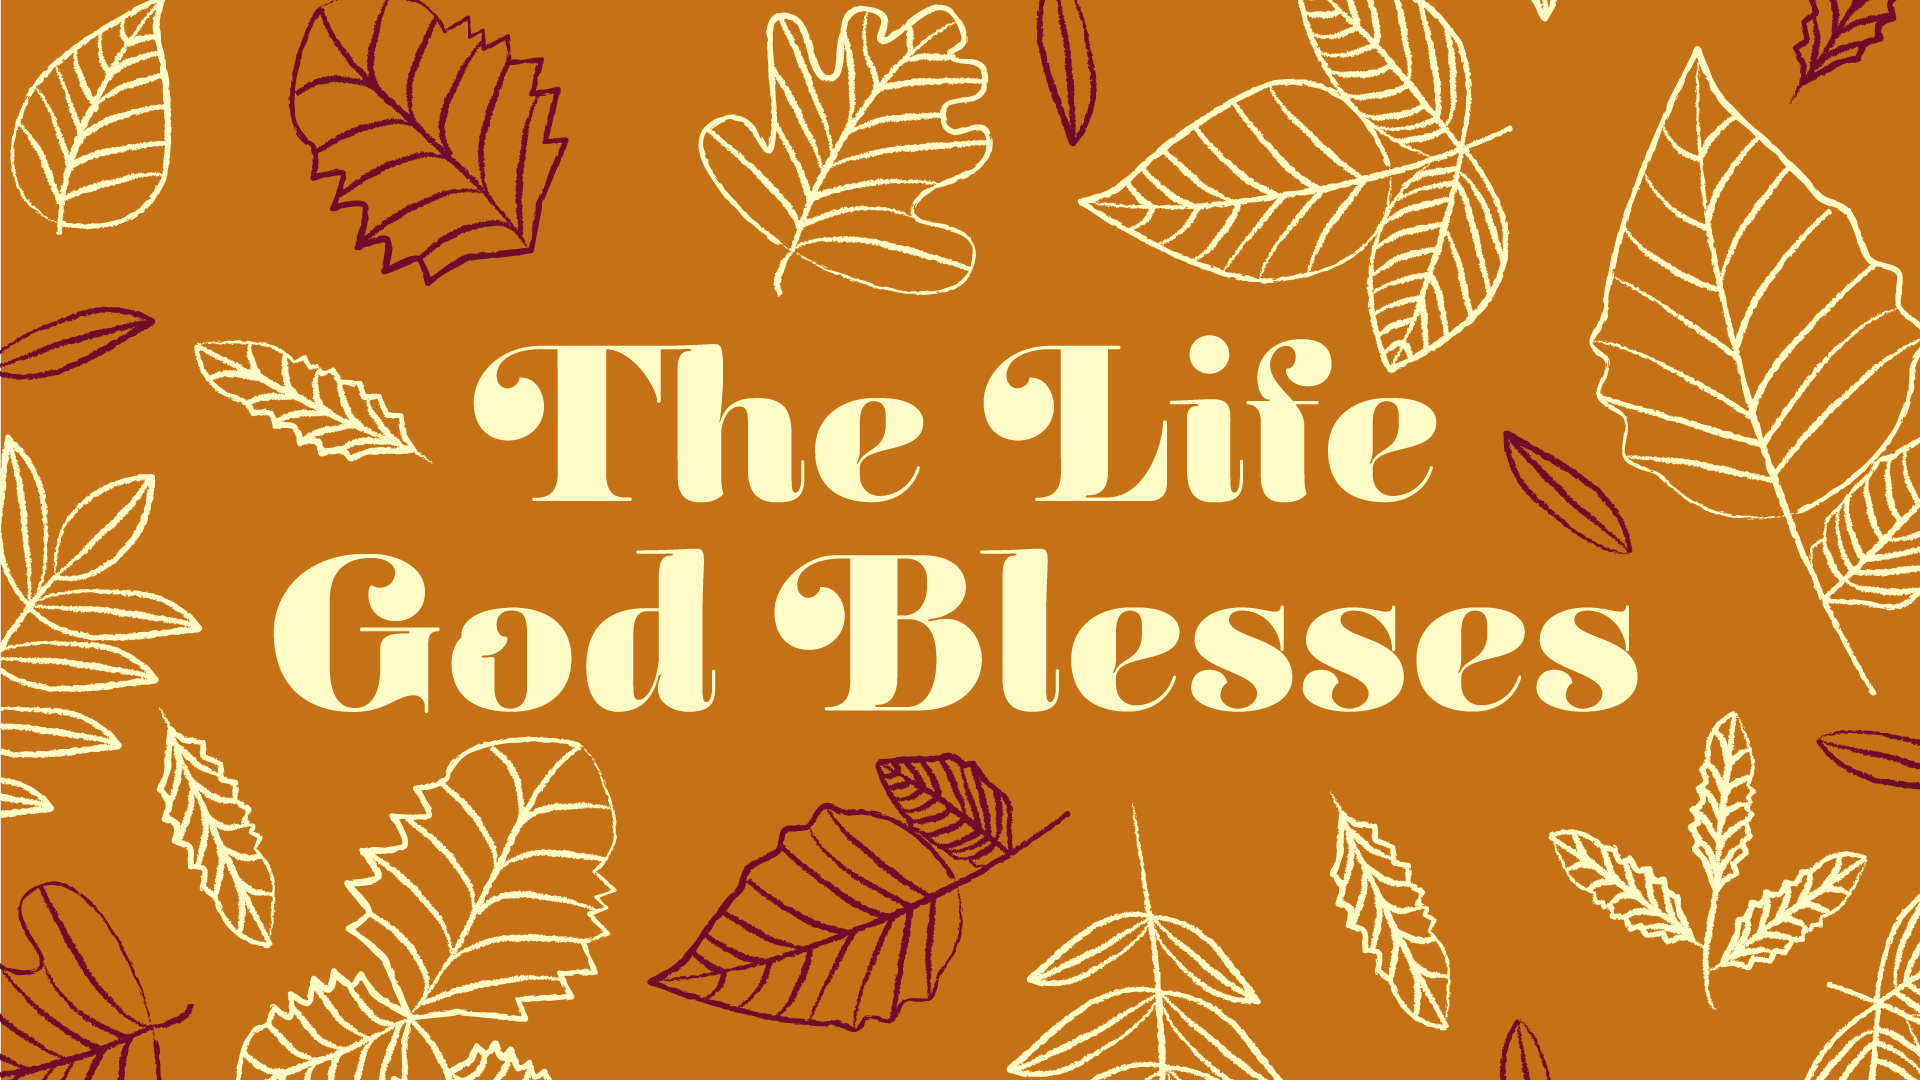 The Life God Blesses